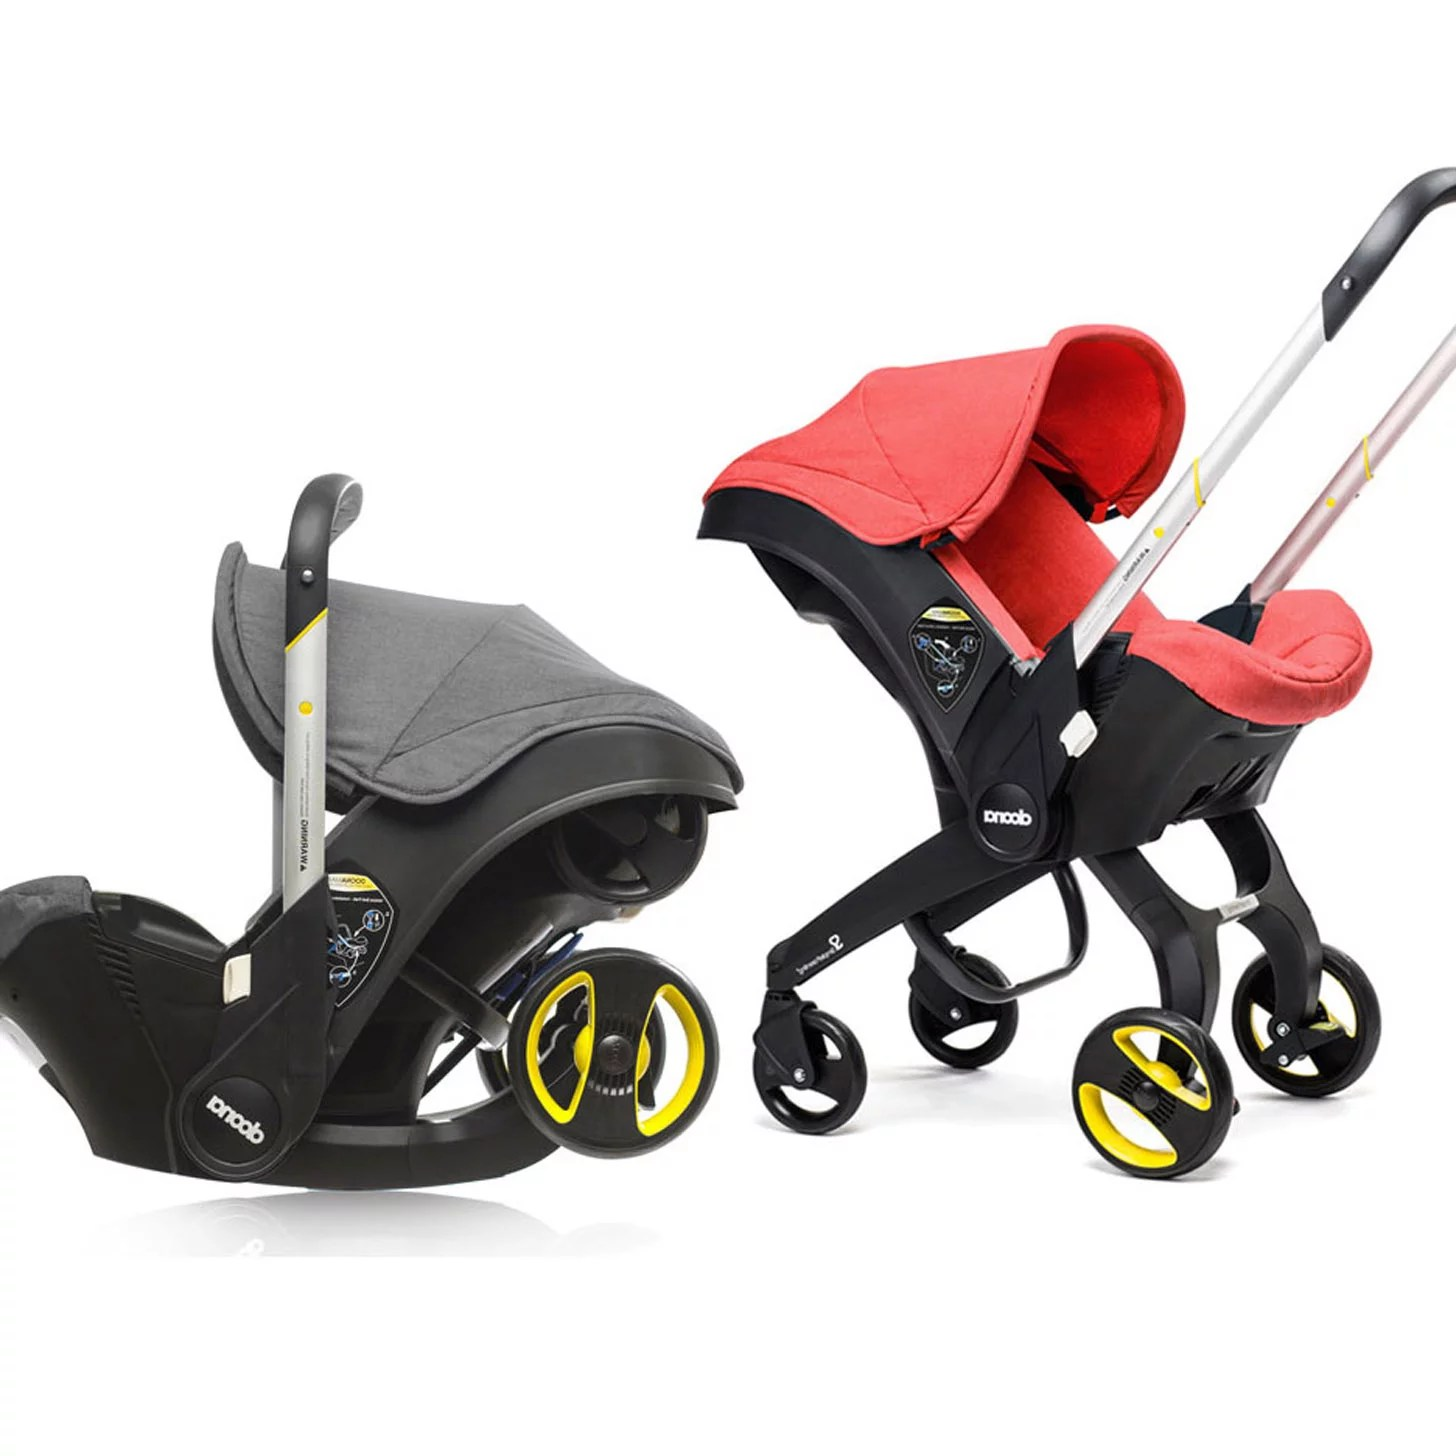 Newborn Baby Buggy Reviews Doona Car Seat Stroller Review Popsugar Family